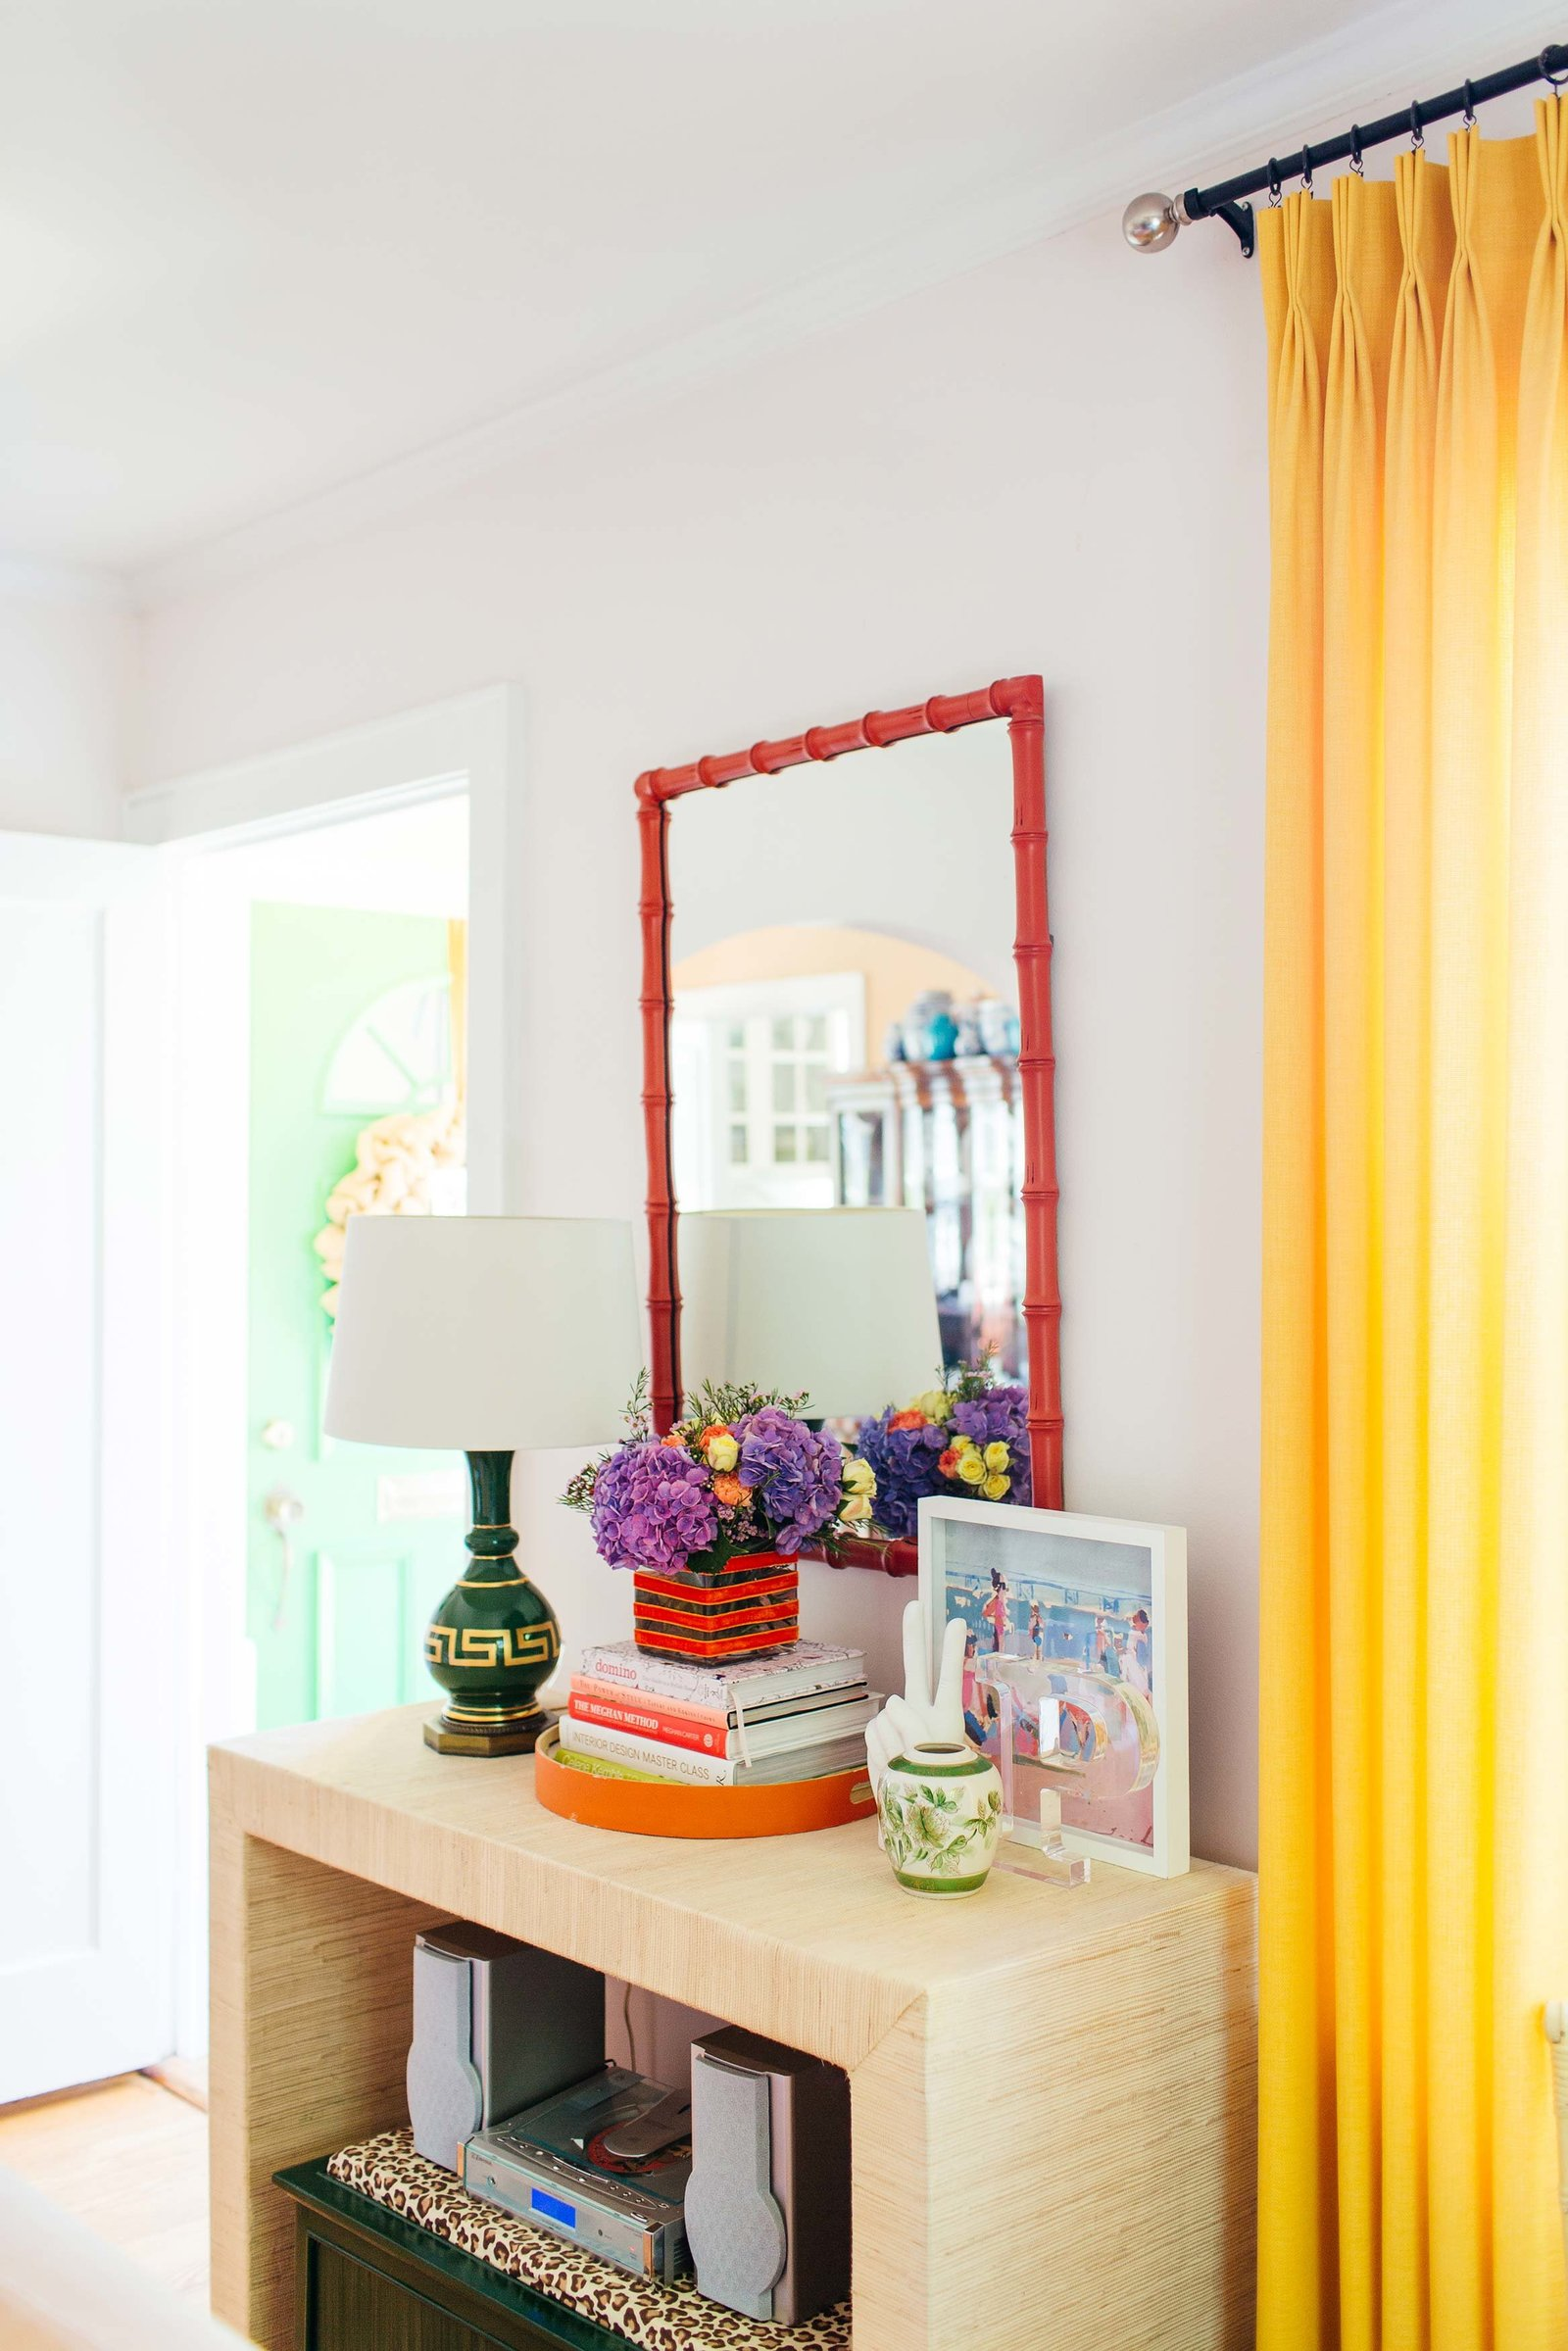 An entryway table with a lamp, mirror, and accessories.